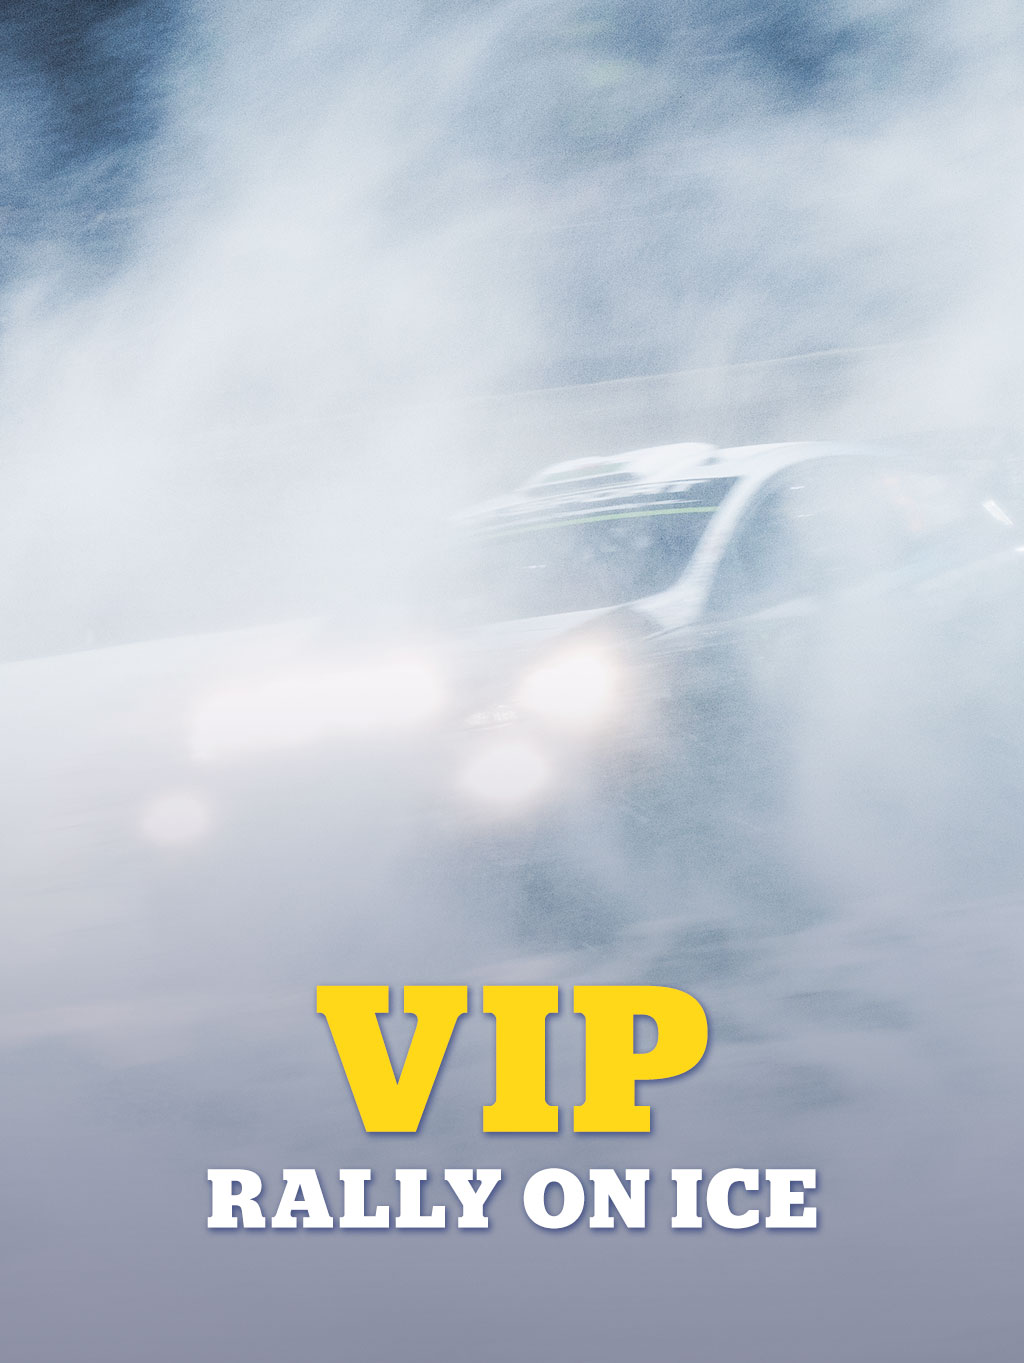 RallyOnIce_vip_staende